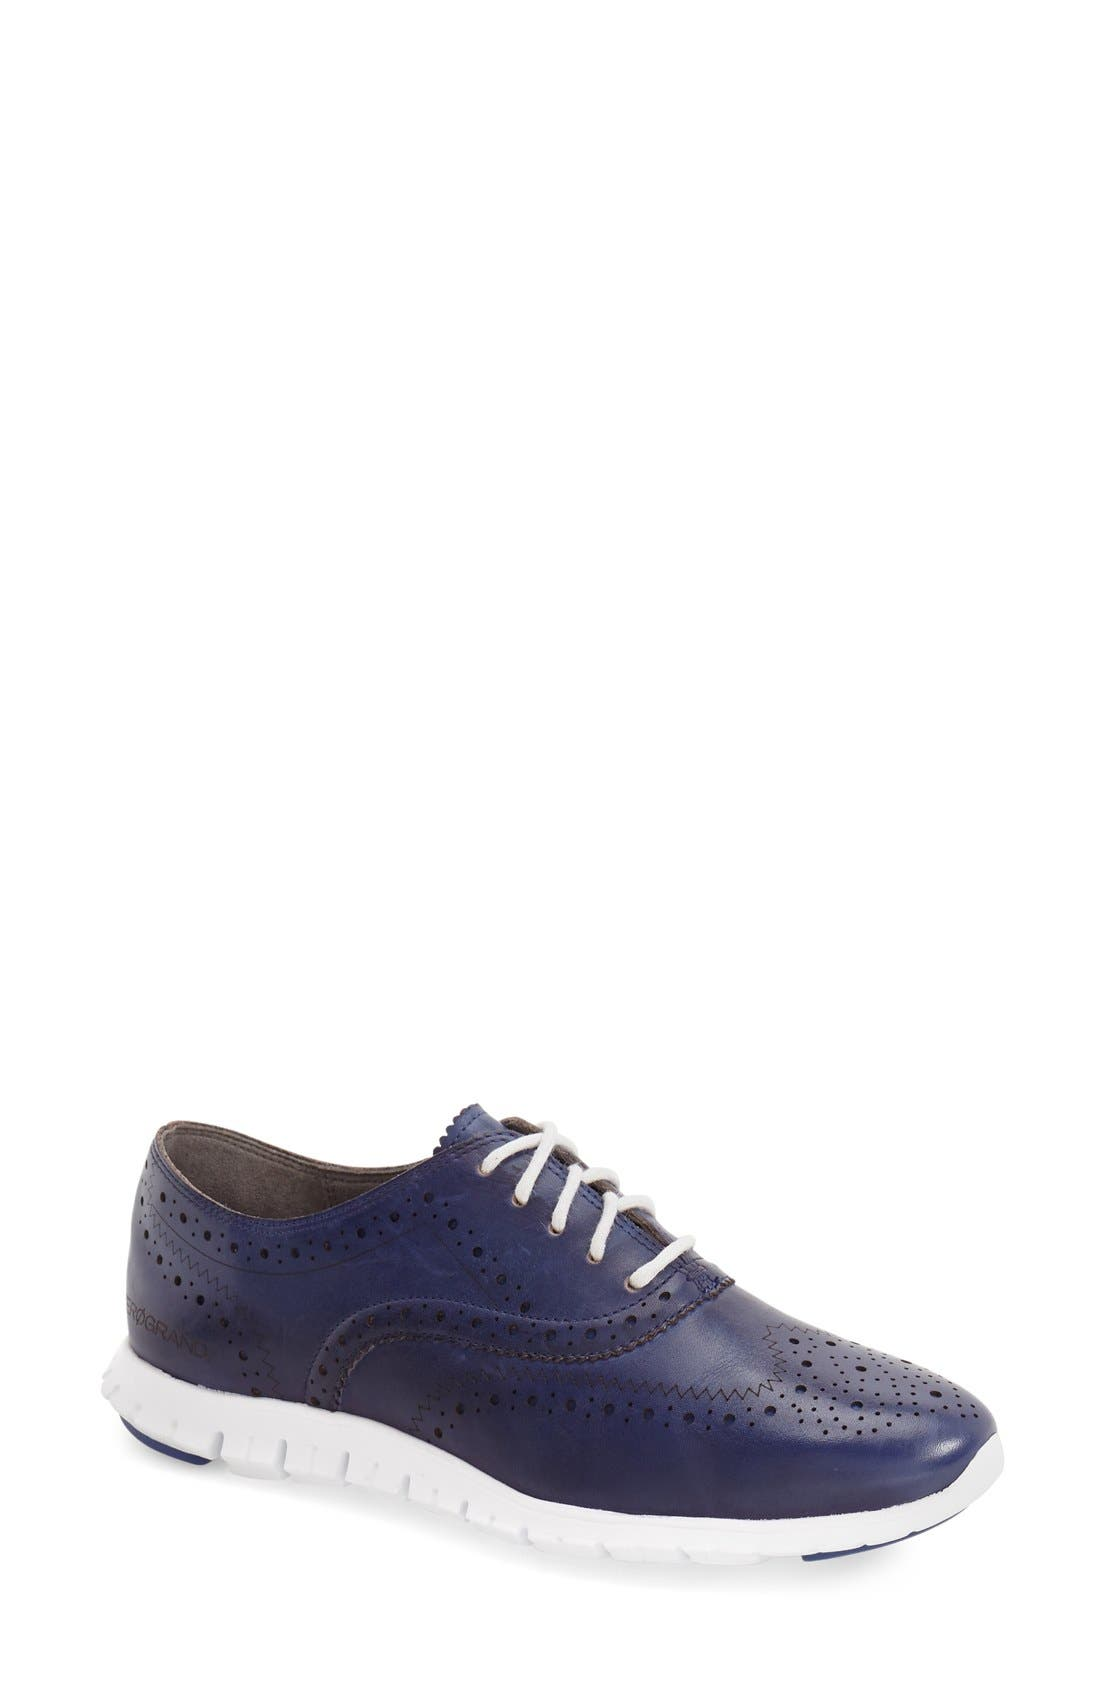 'ZeroGrand' Perforated Wingtip,                             Main thumbnail 20, color,